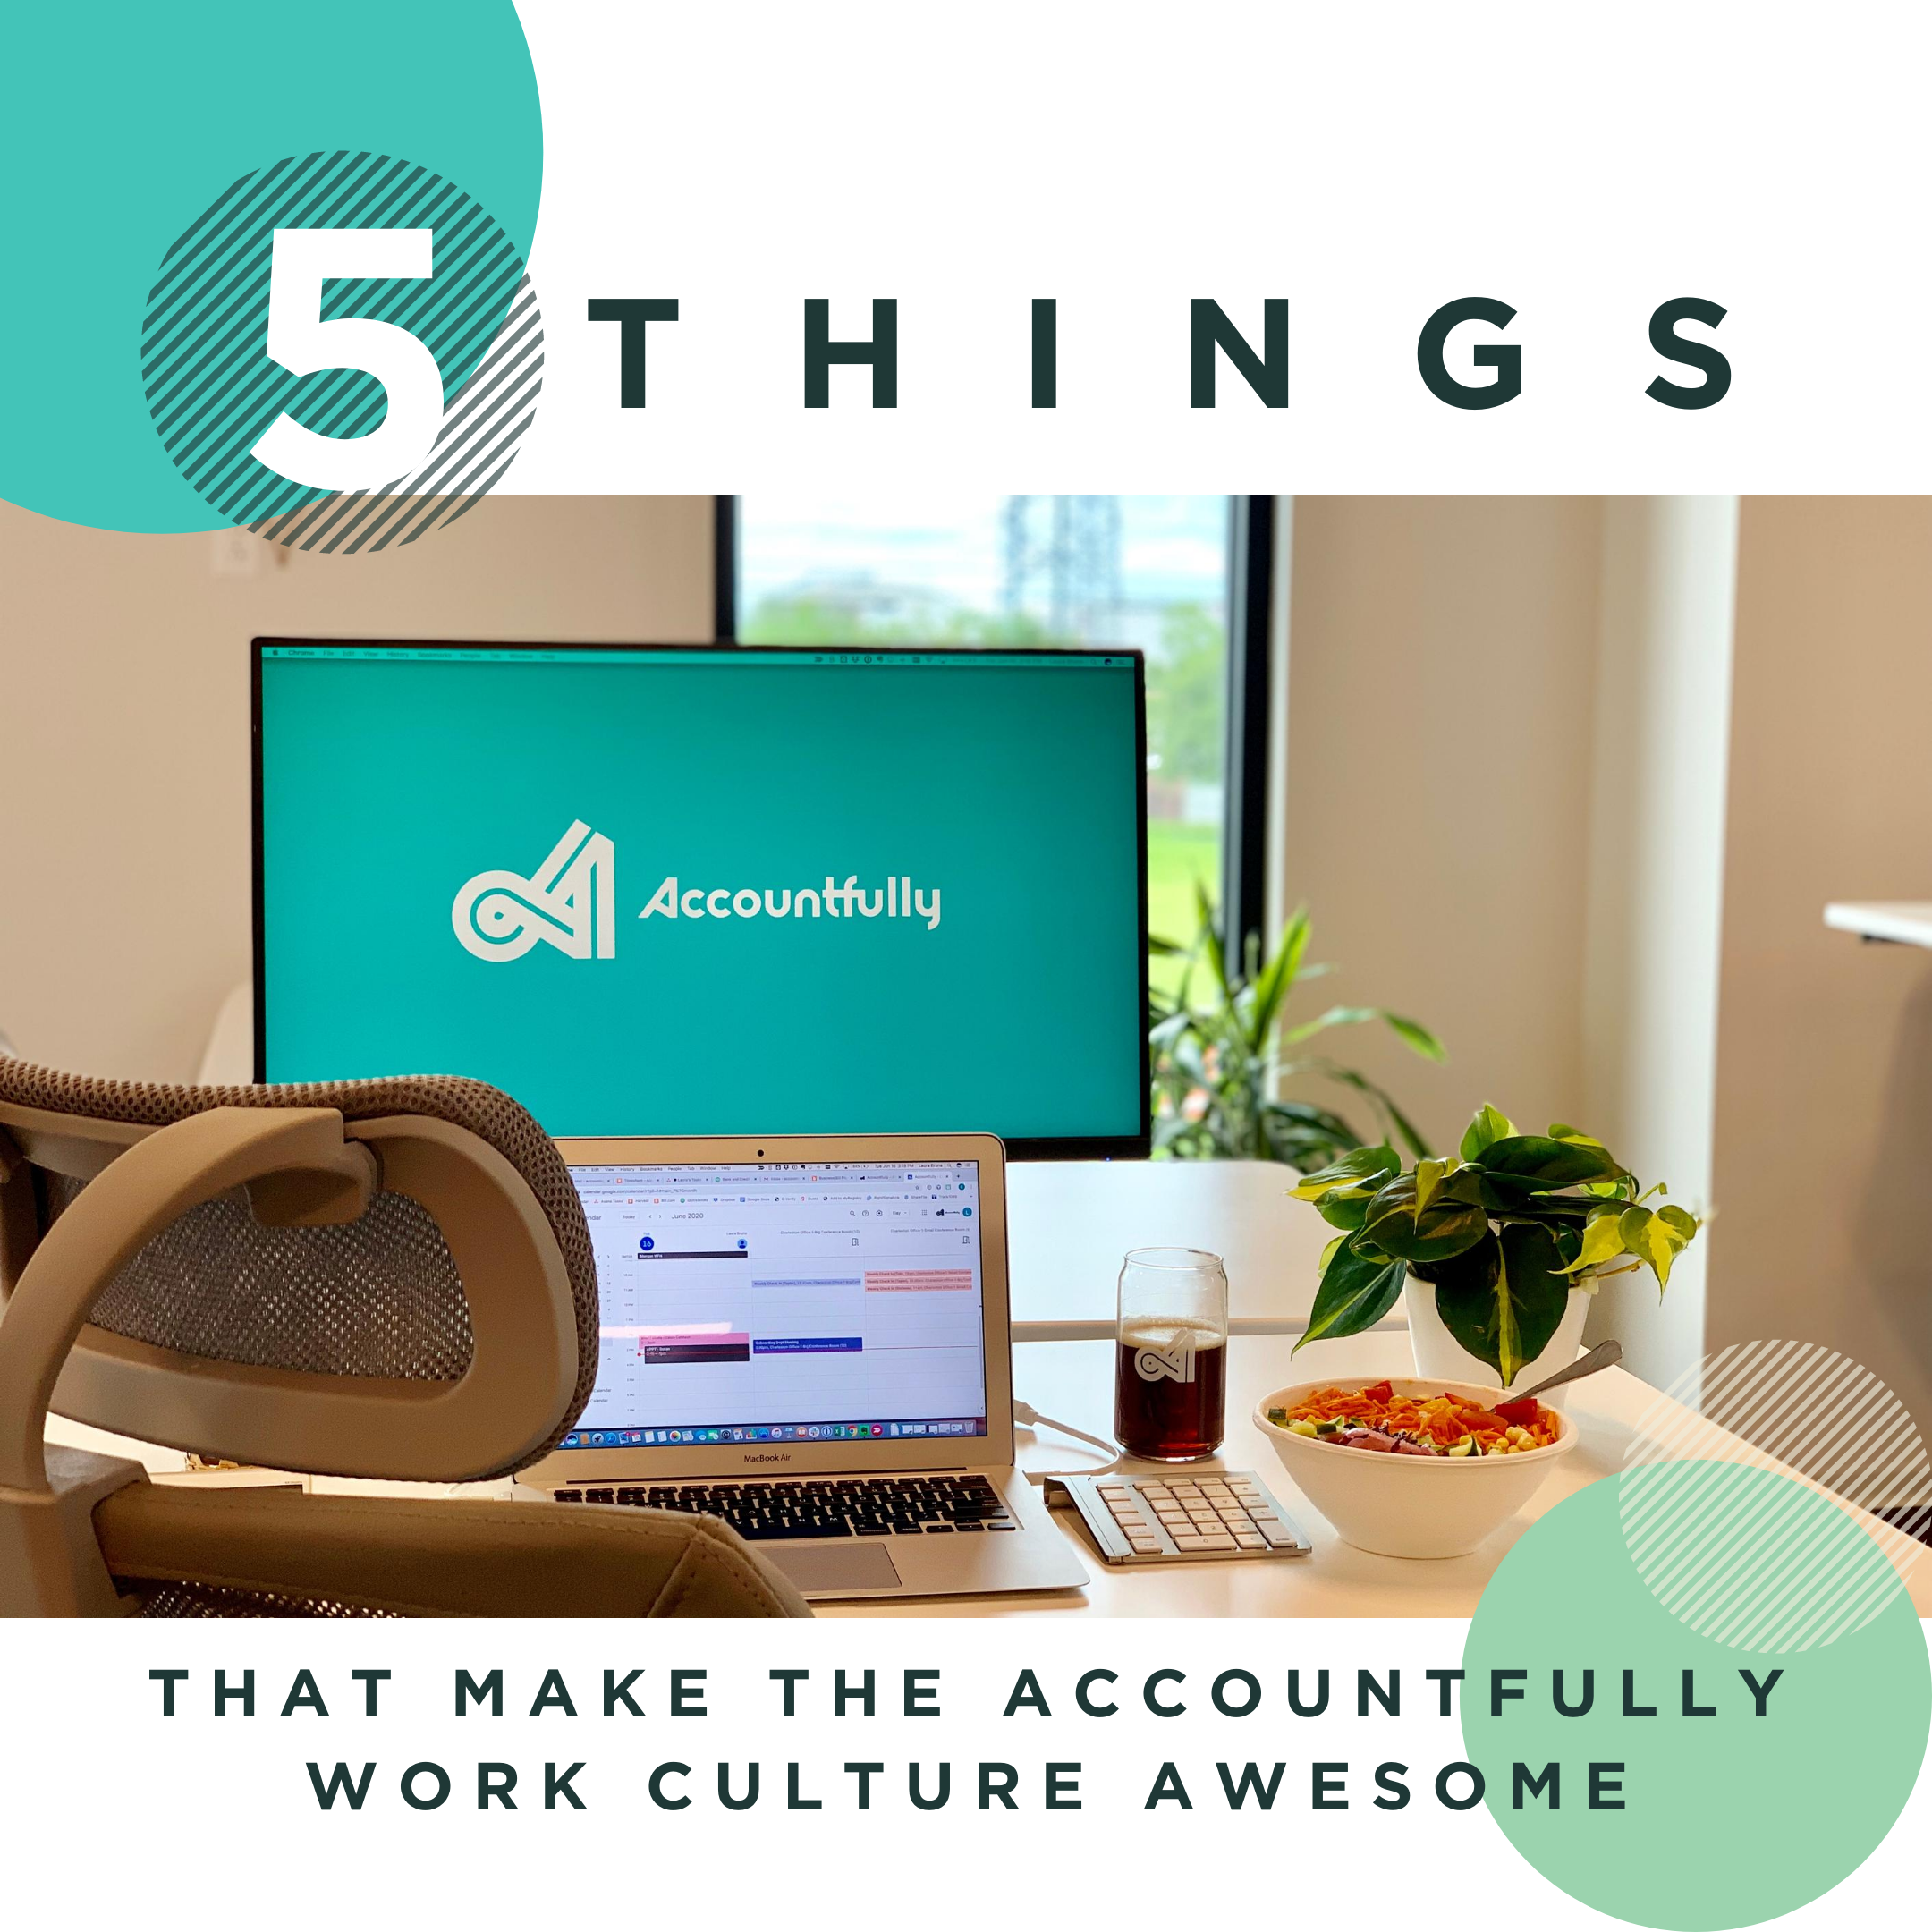 Accountfully work culture